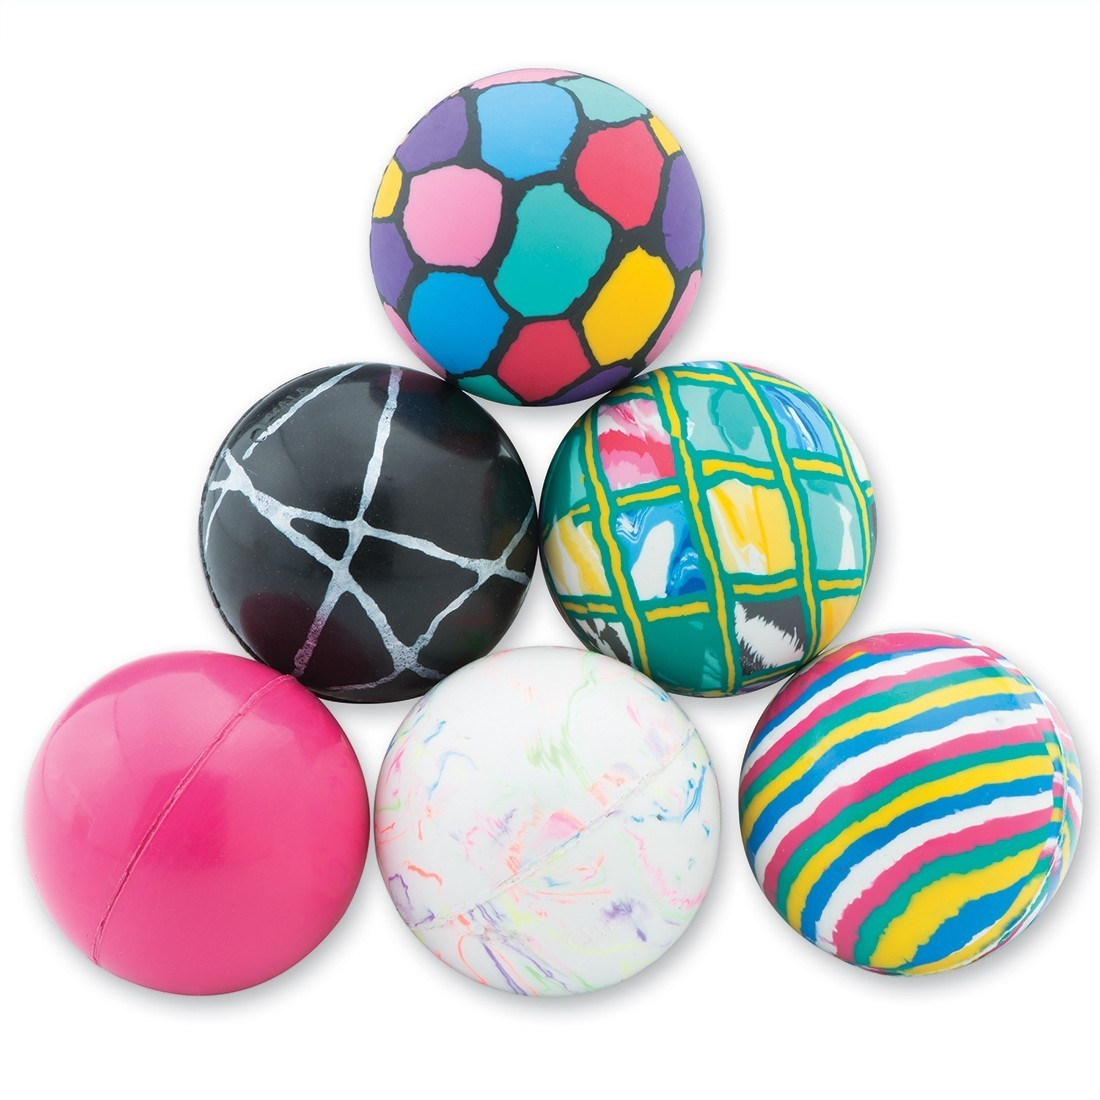 Giant Assortment of 43mm Bouncing Balls [image]